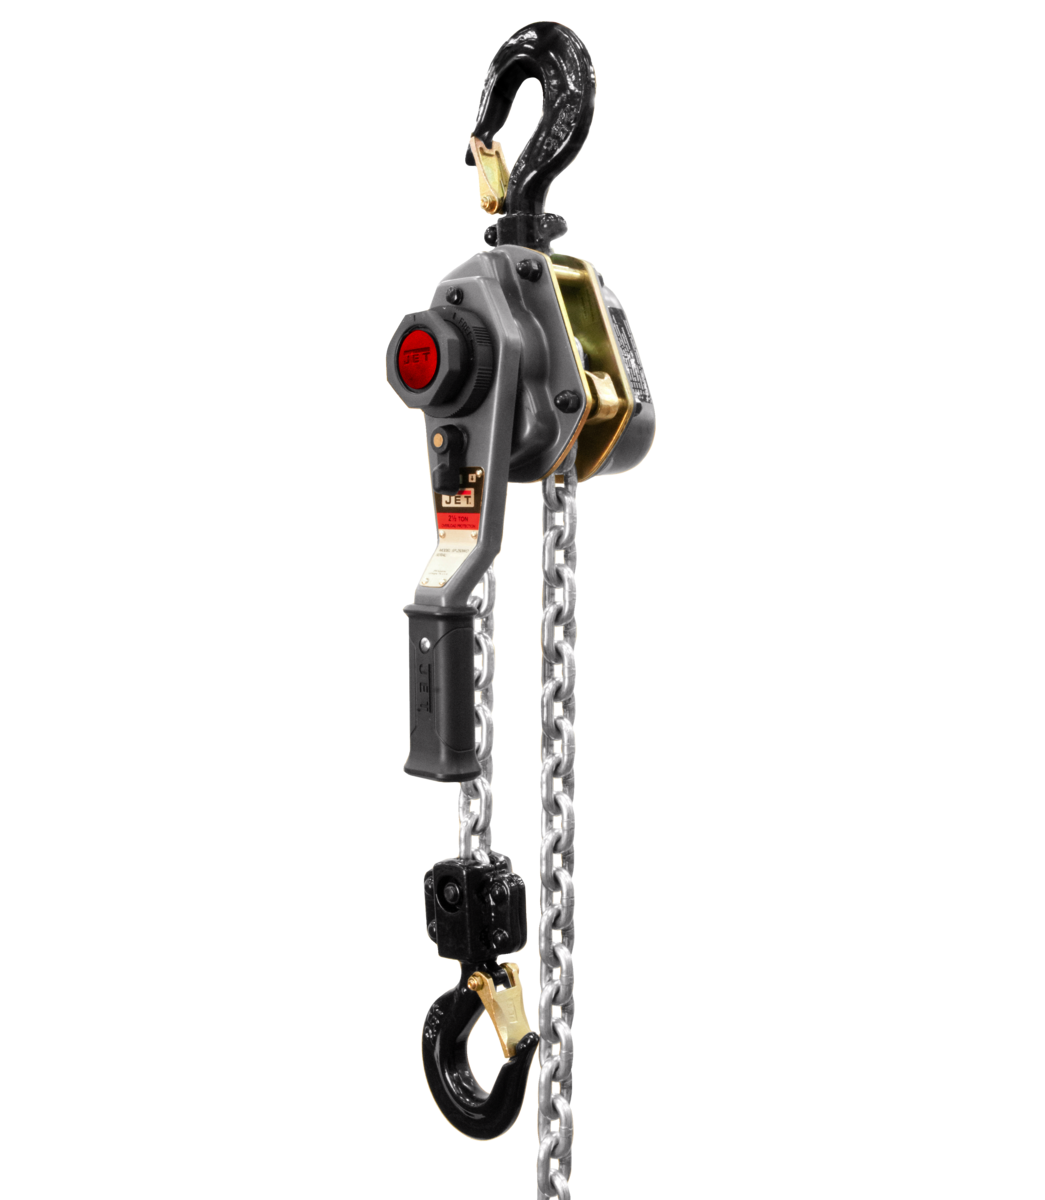 JLH-250WO-10 2-1/2 Ton Lever Hoist, 10' Lift with Overload Protection